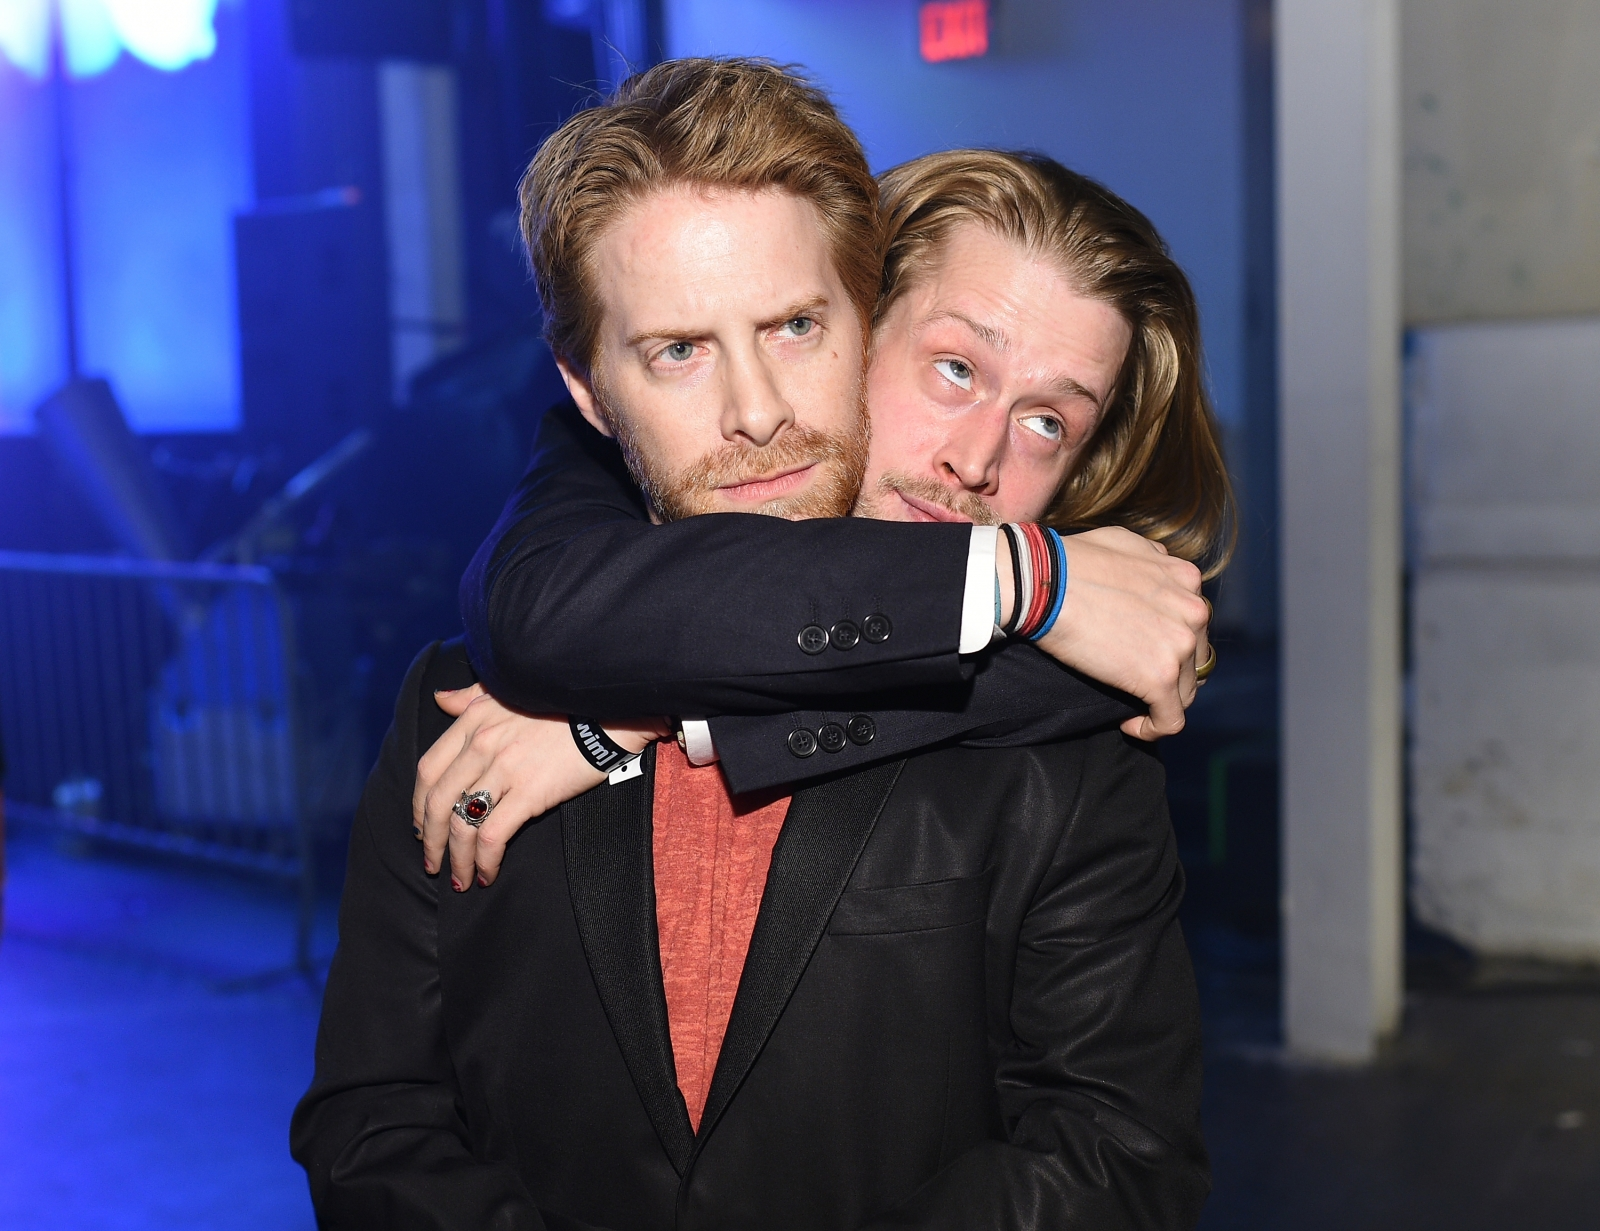 Seth Green and Macaulay Culkin